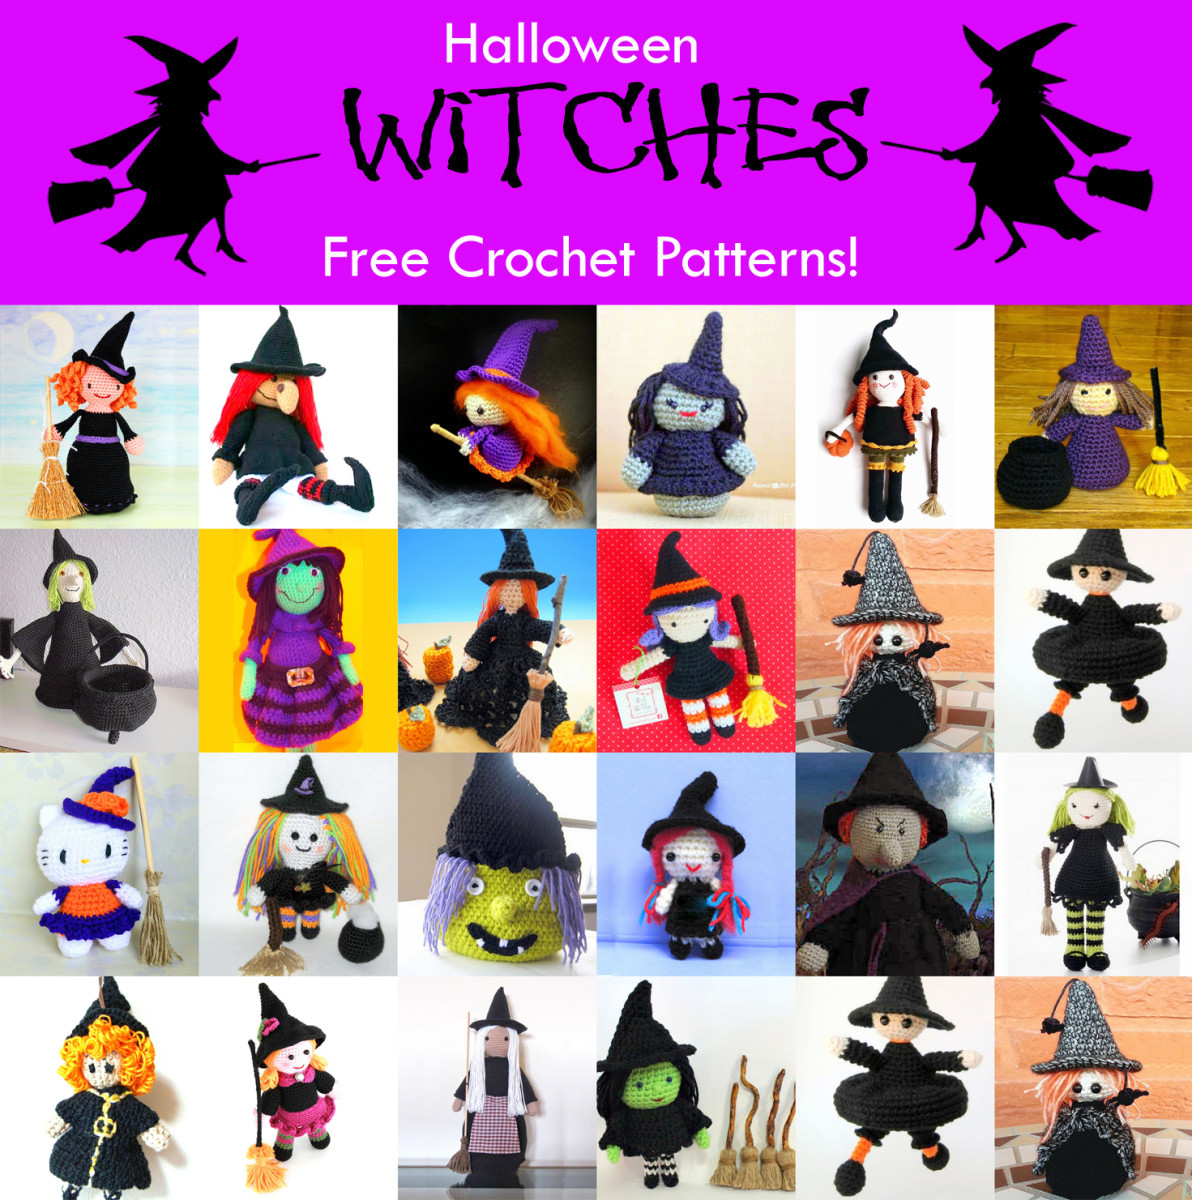 24 Free Halloween Witch Crochet Patterns